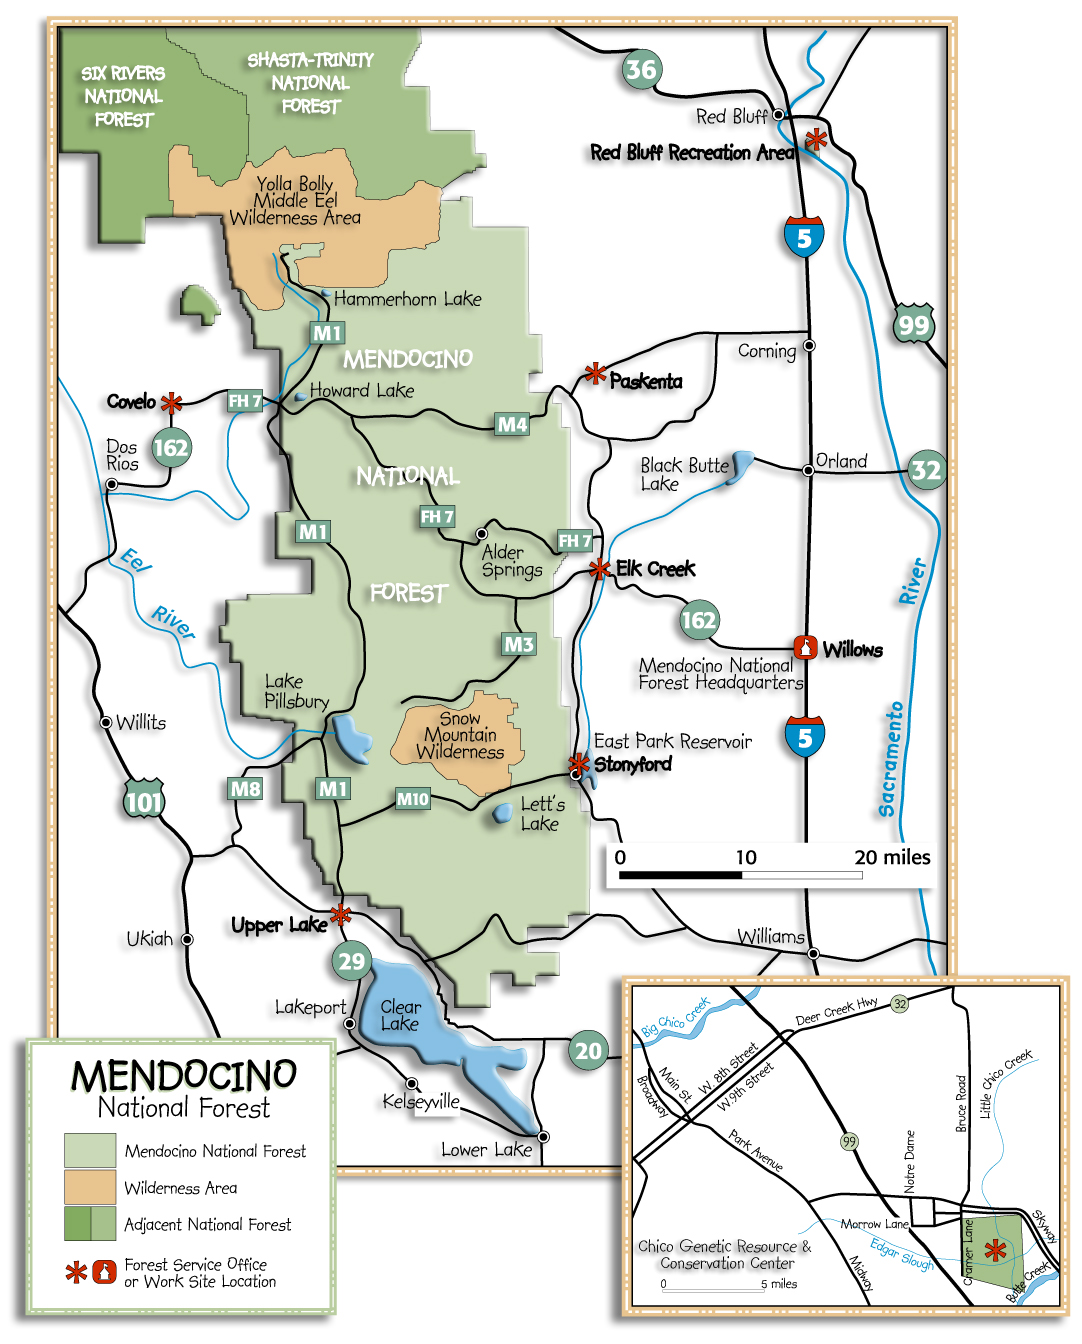 Mendocino National Forest Maps  Publications - Us forest service ecoregion map